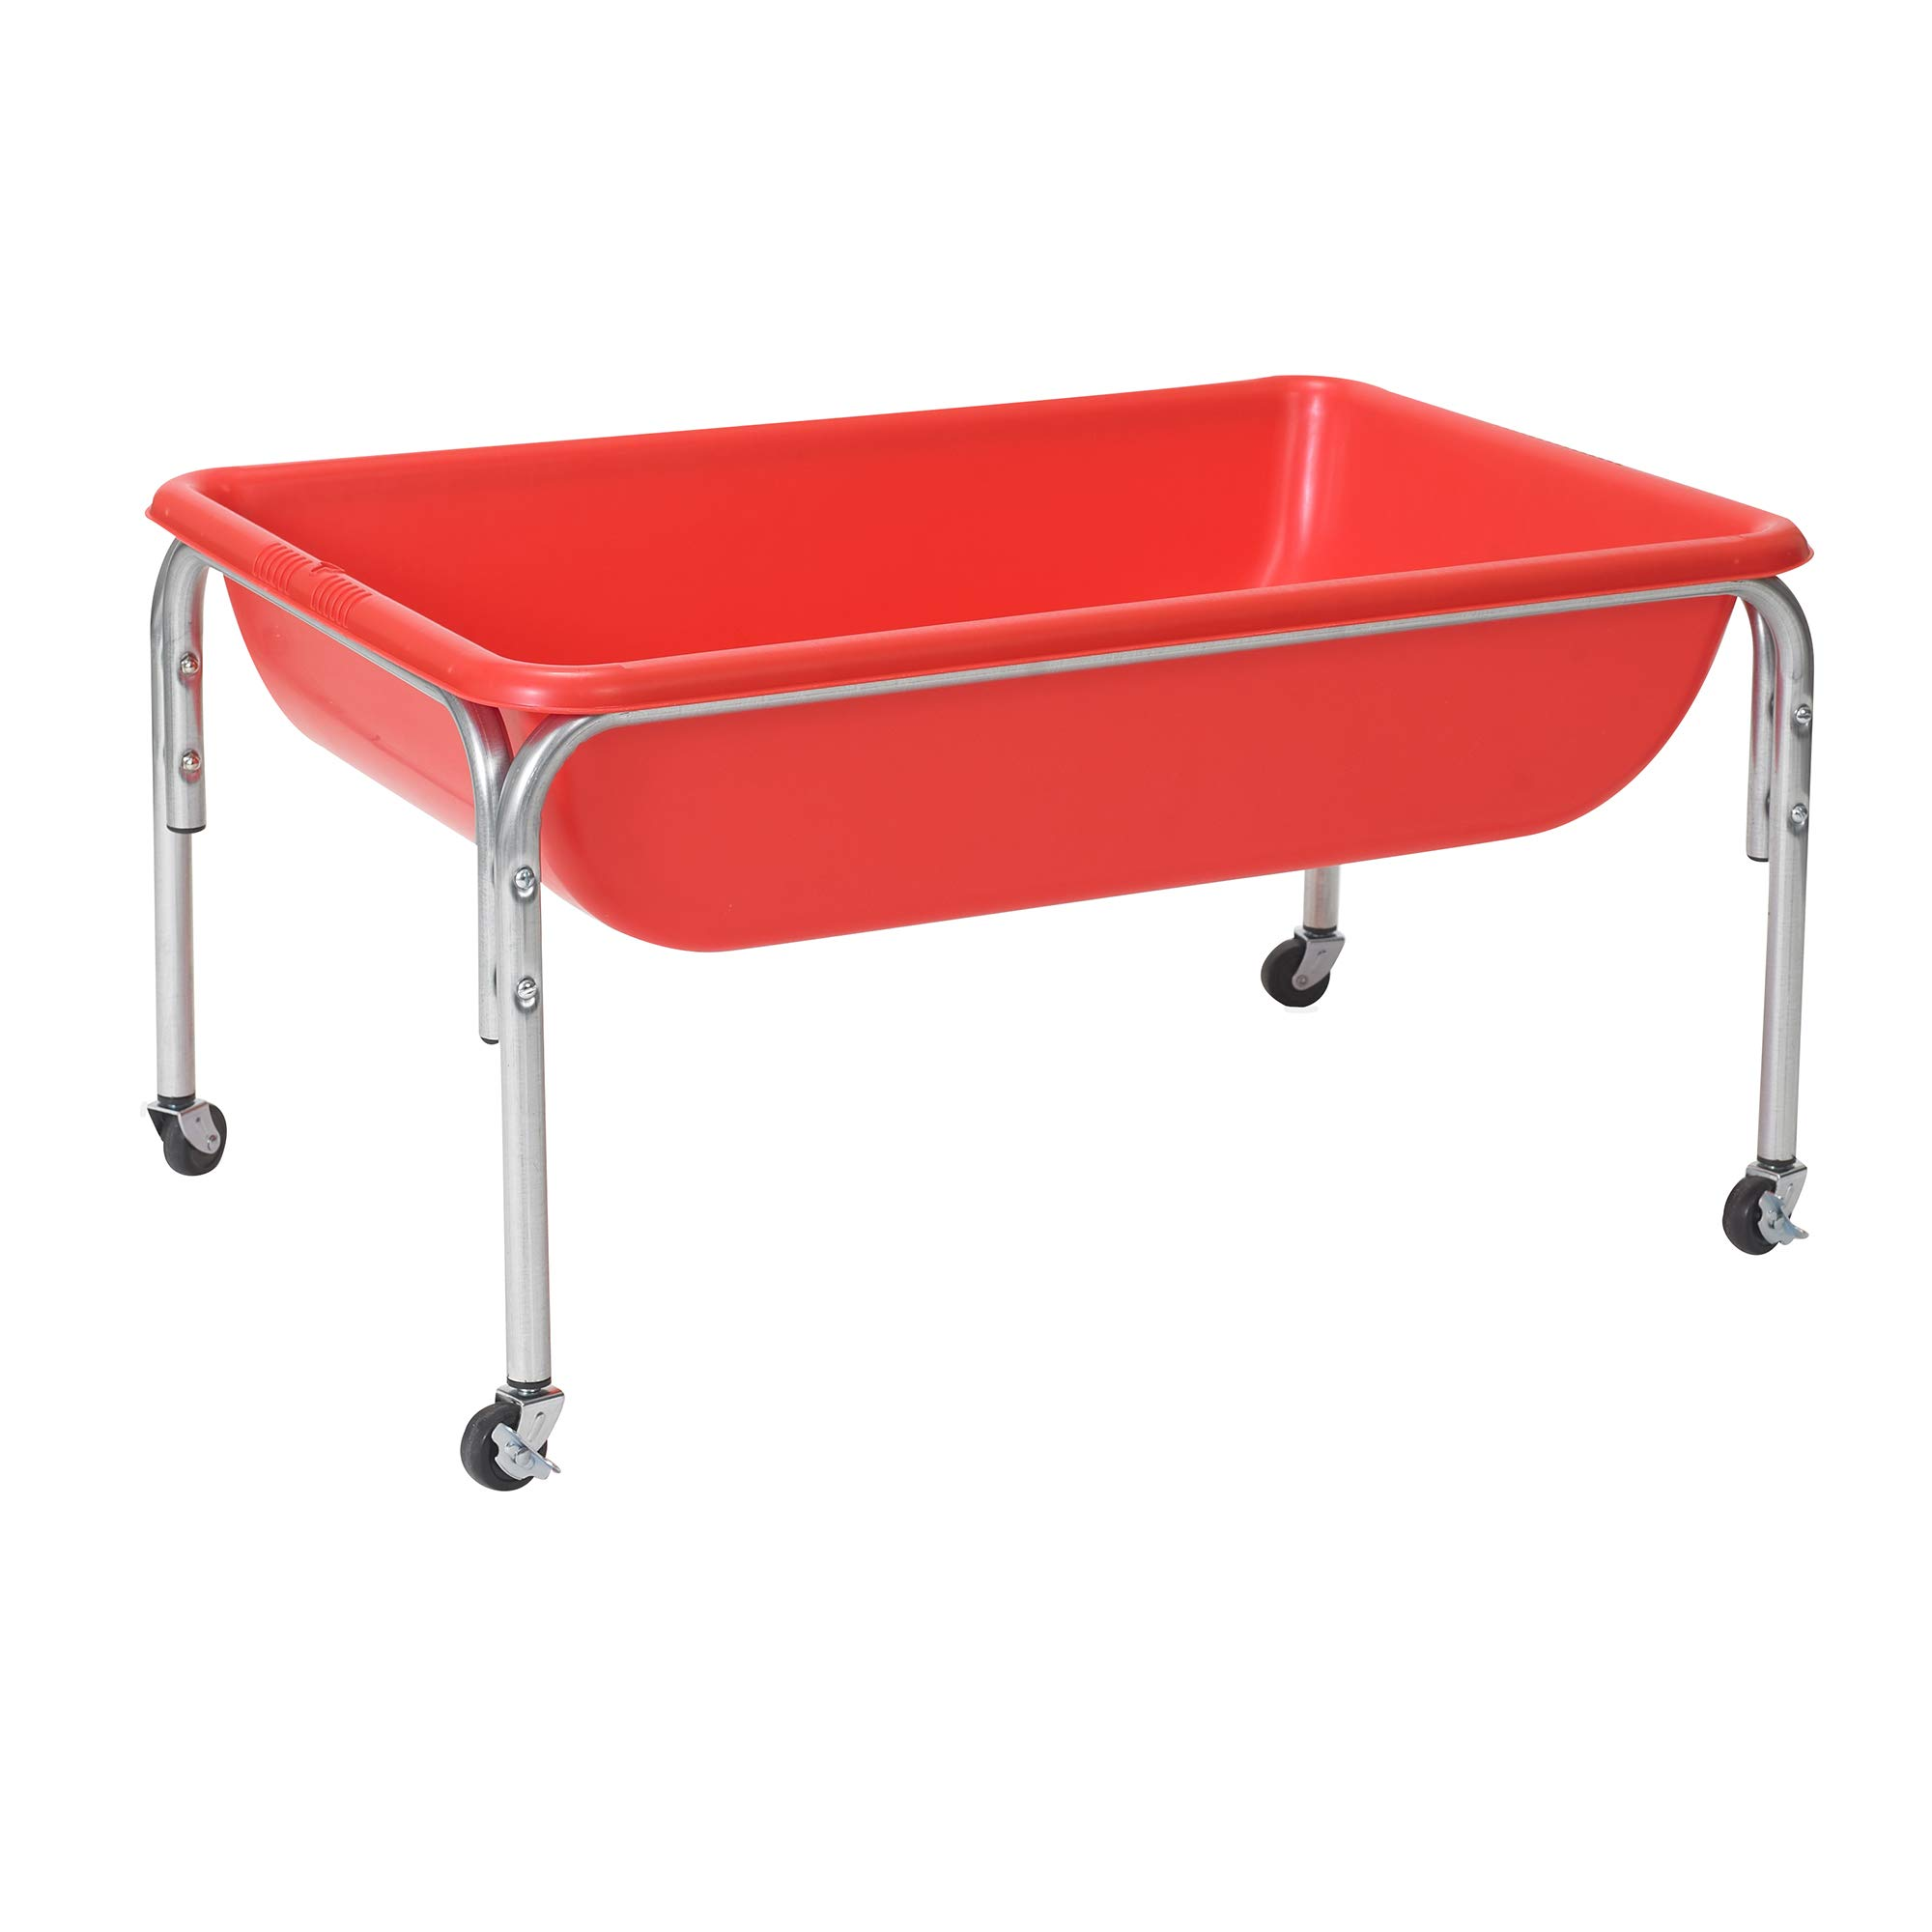 Children's Factory Large Sensory Table and Lid Set, 36'' by 24'' by 18'', Red - Fill with Water, Sand, Beads and More - Lid for Safe and Clean Storage - Made of Durable Plastic - Indoor or Outdoor Use by Children's Factory